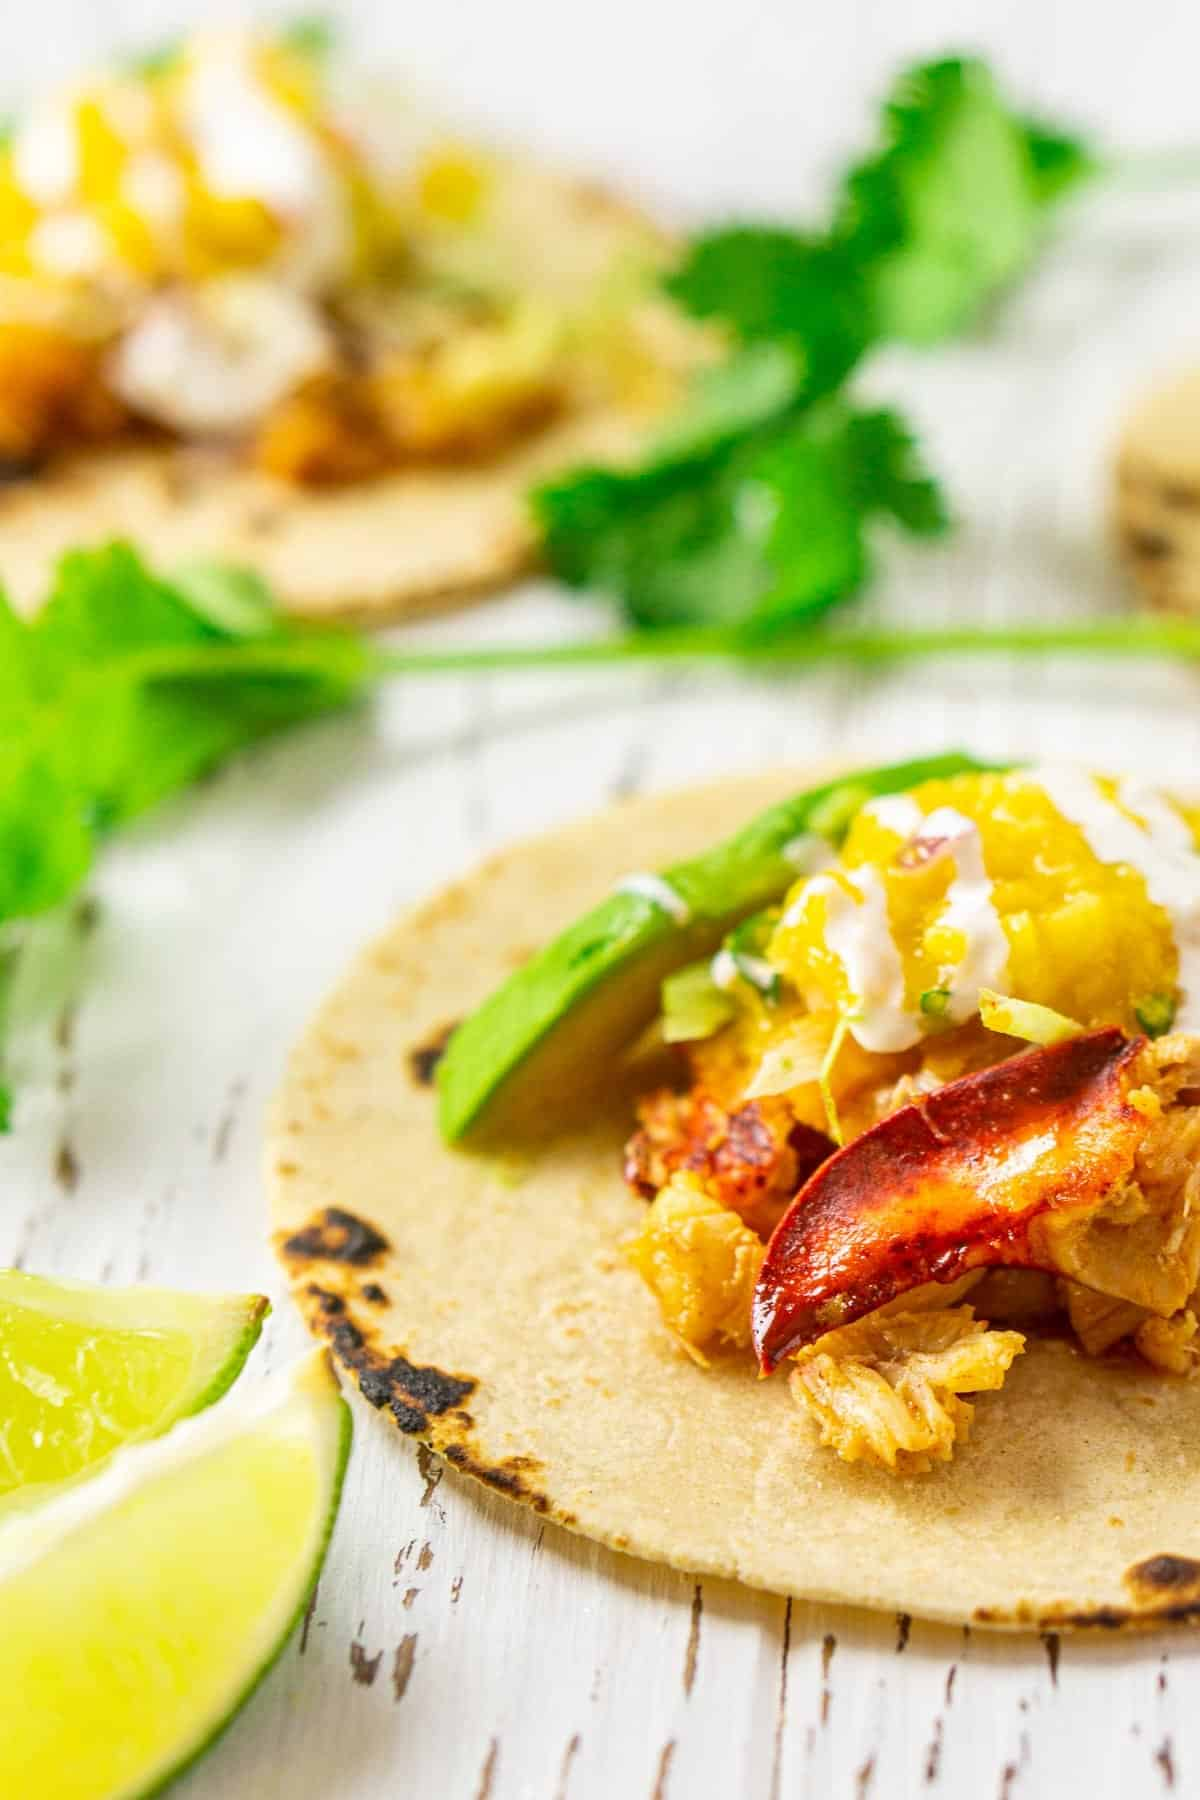 A close-up shot of the lobster tacos with two limes to the side.